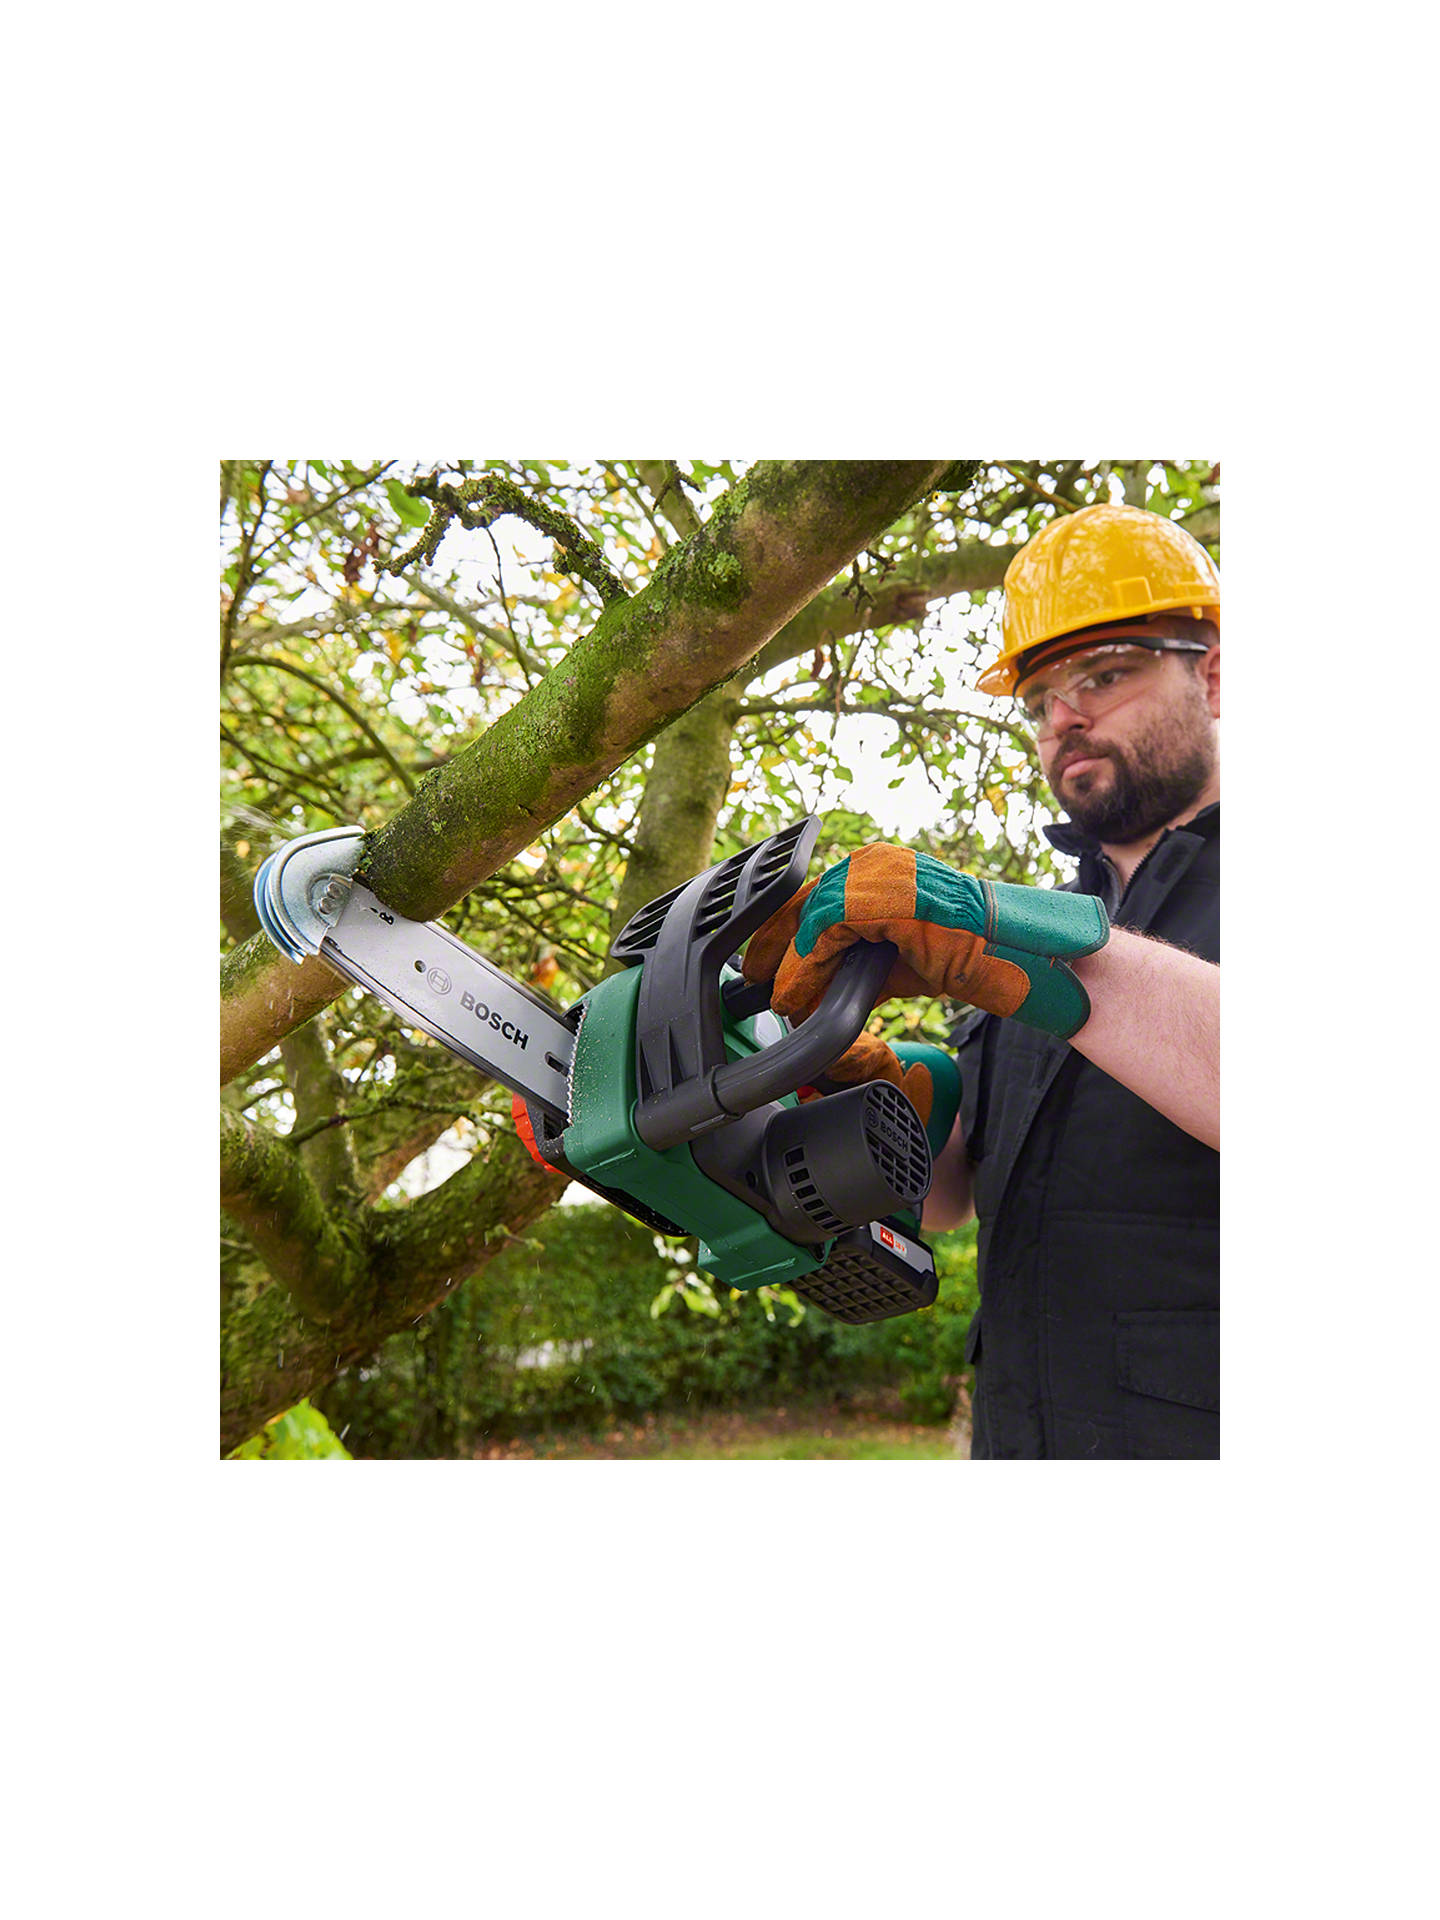 BuyBosch UniversalChain 18 Chainsaw Online at johnlewis.com